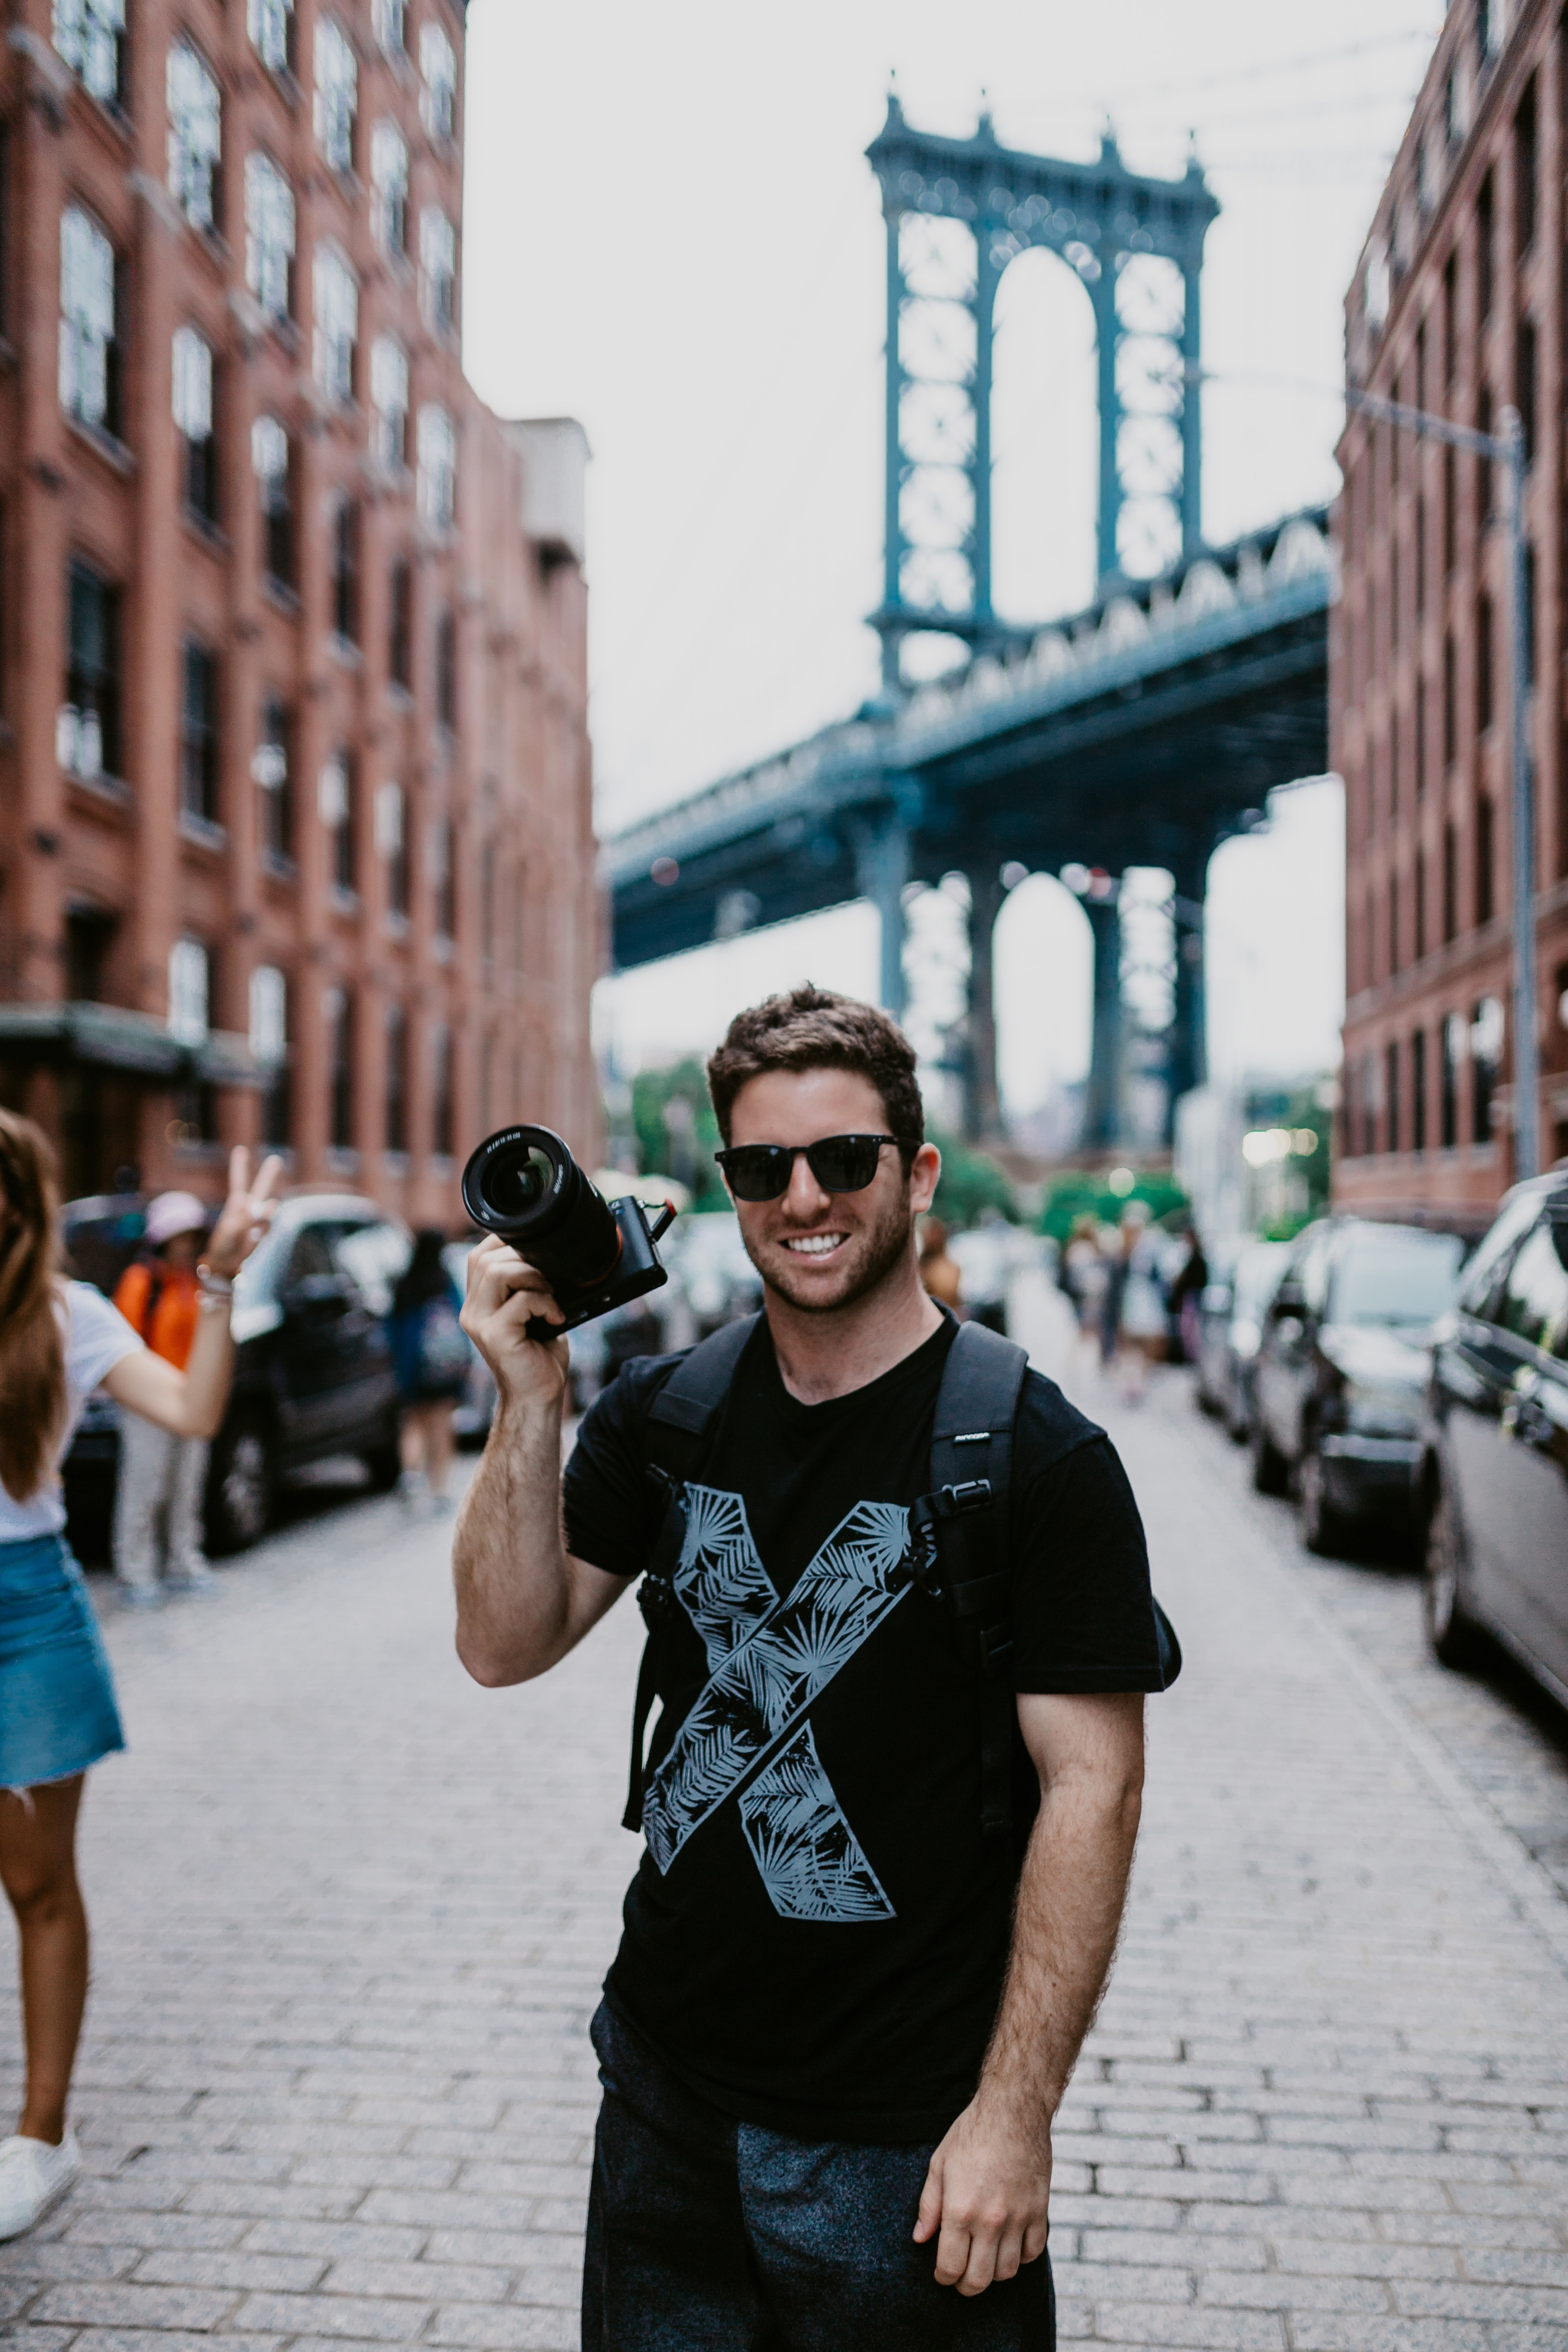 smiling man holding DSLR camera carrying backpack near parked cars during daytimes